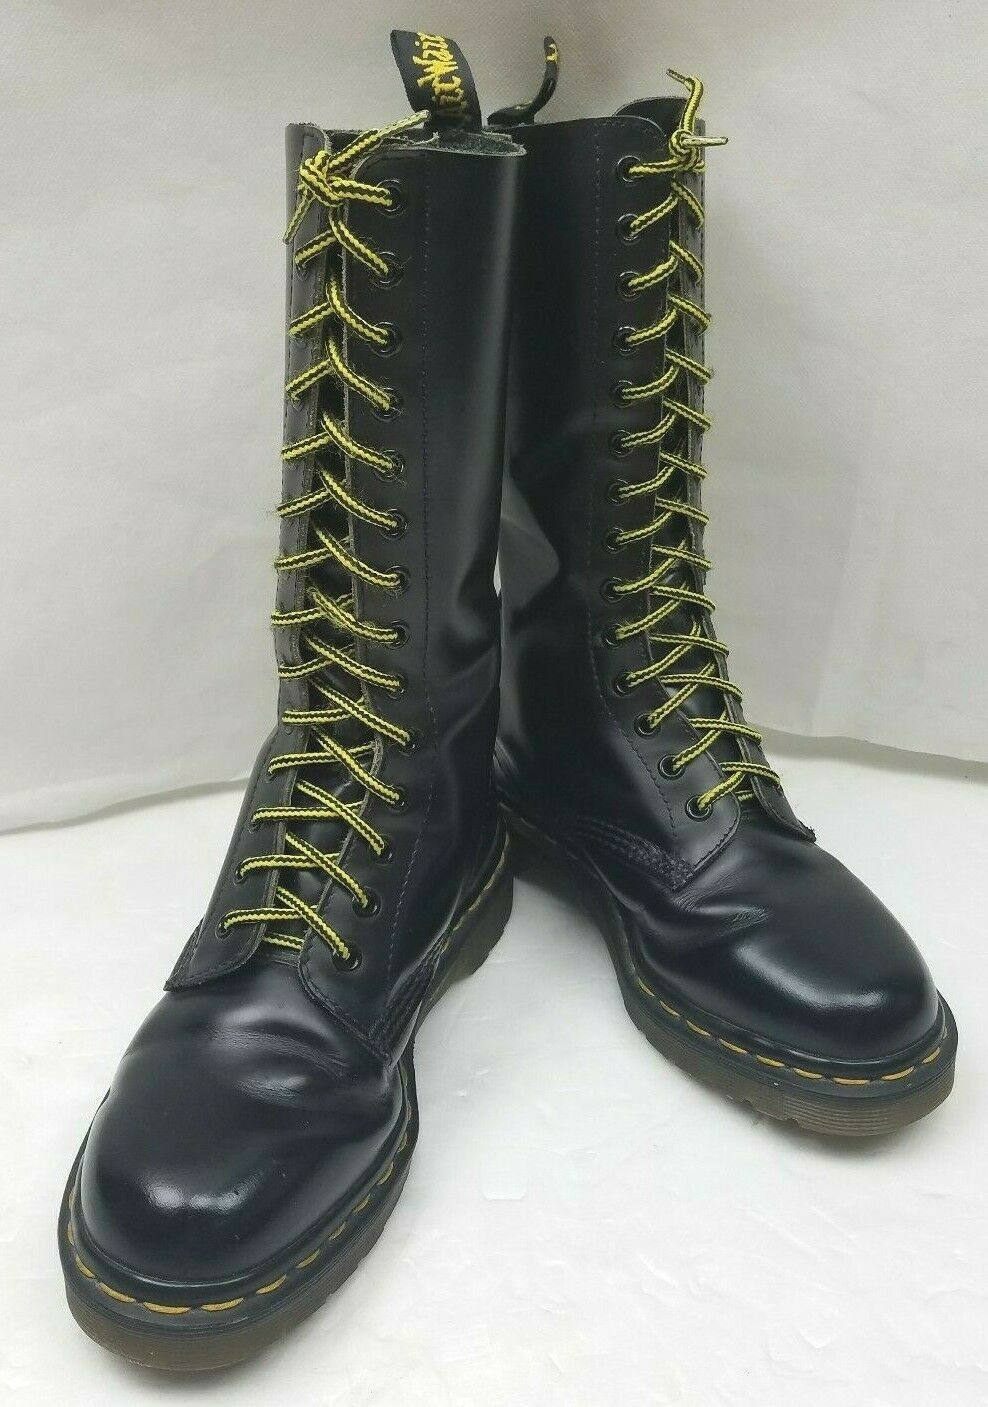 Dr Martens Boot (1940s): 3 listings